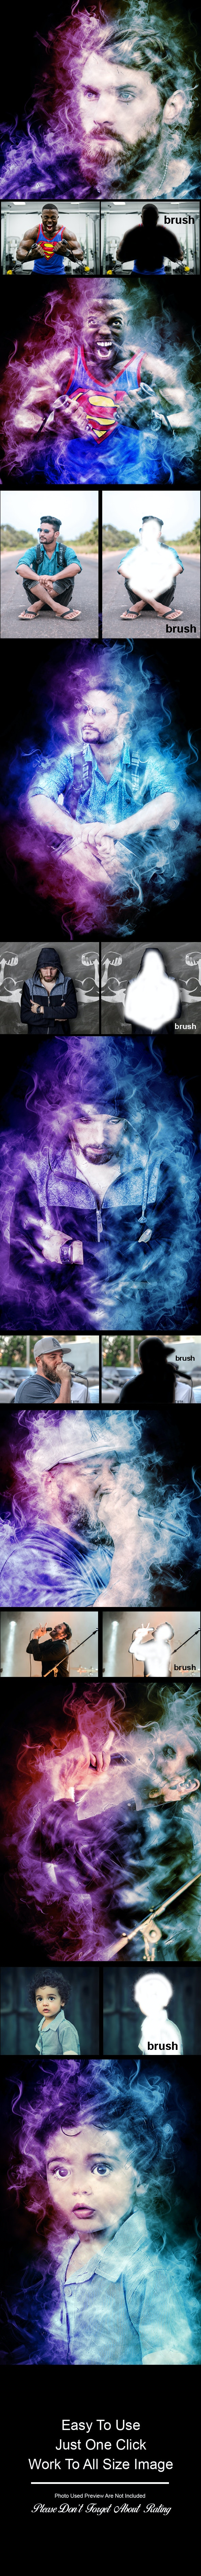 Amazing Colored Smoke Photoshop Action Vol 3 - Photo Effects Actions